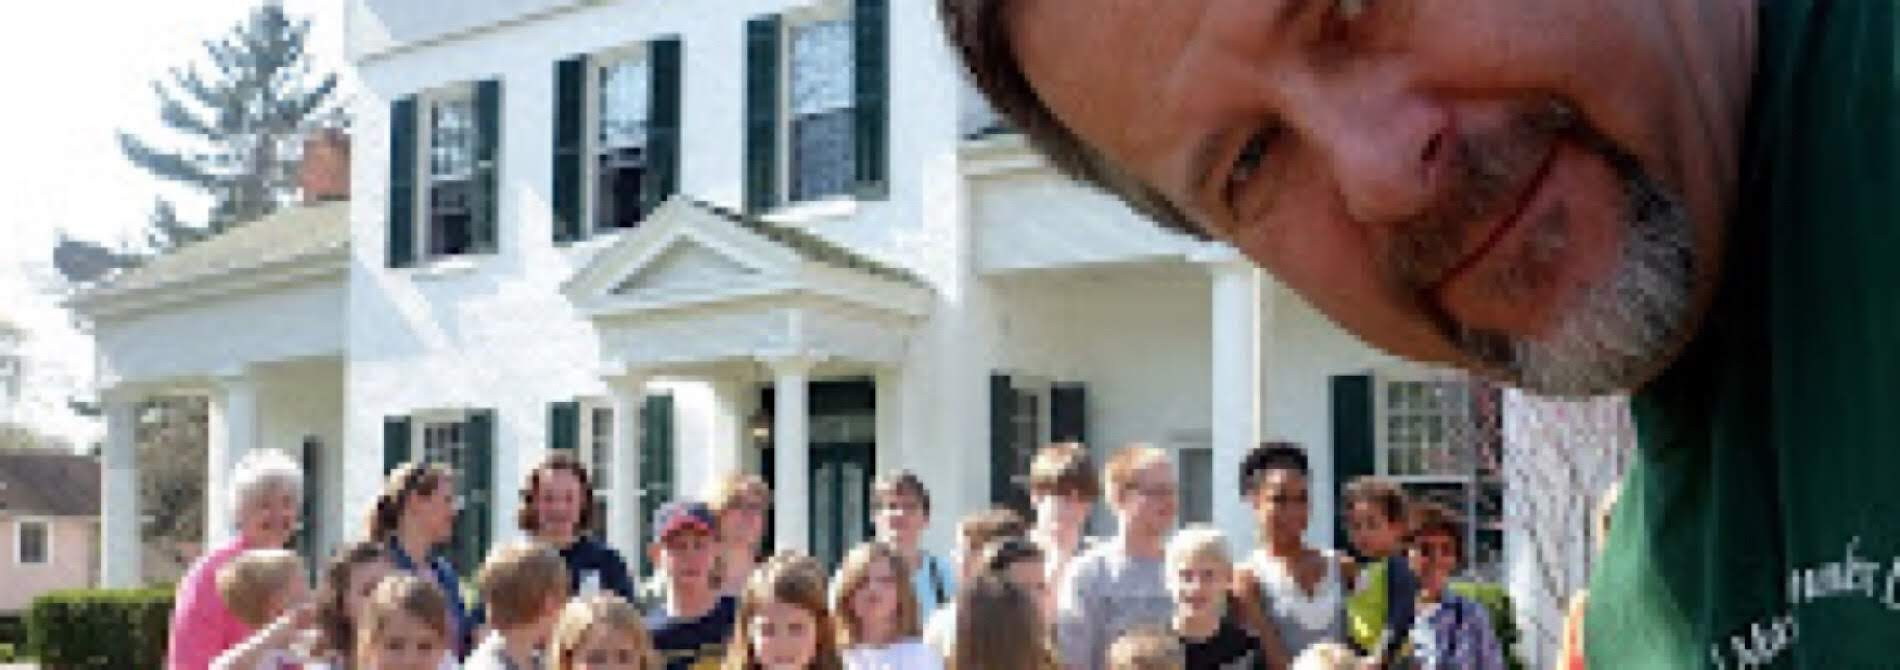 man with many kids in front of big old white house